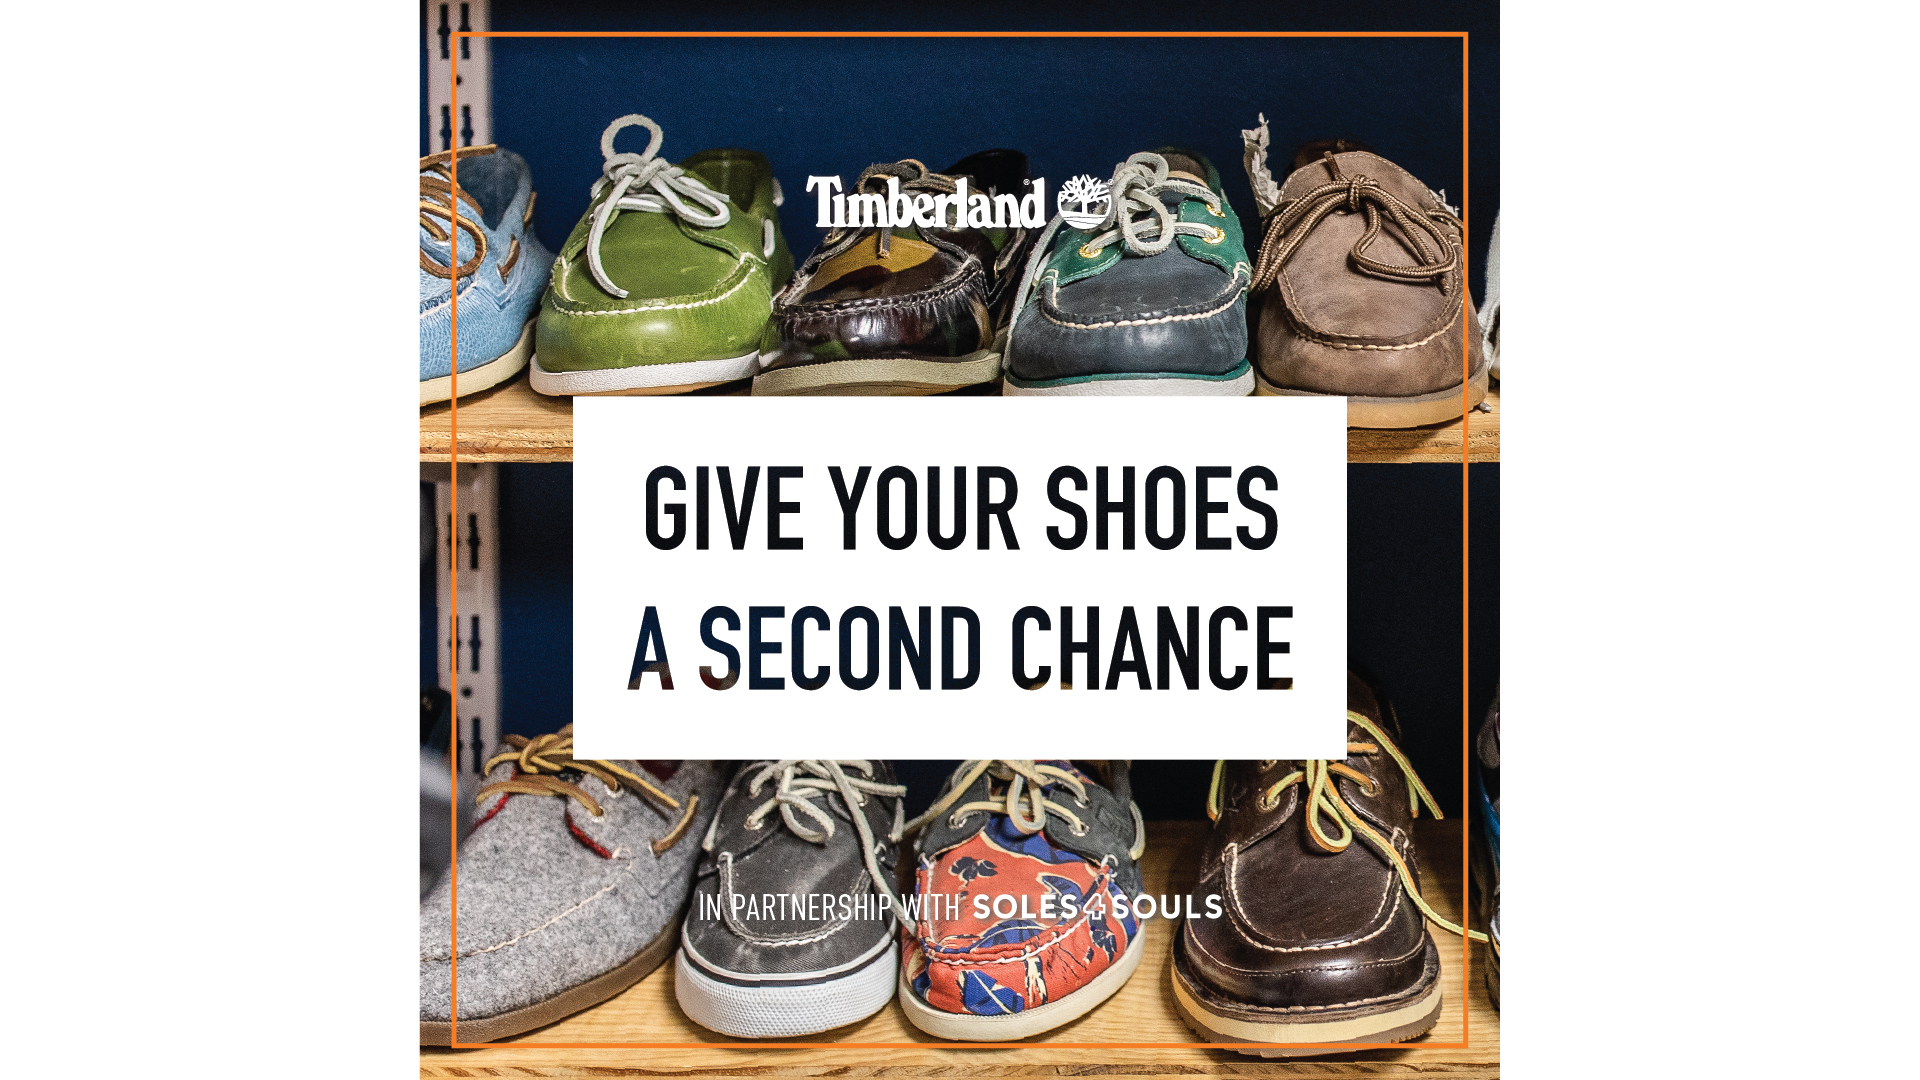 Timberland 'Give your shoes at second chance'